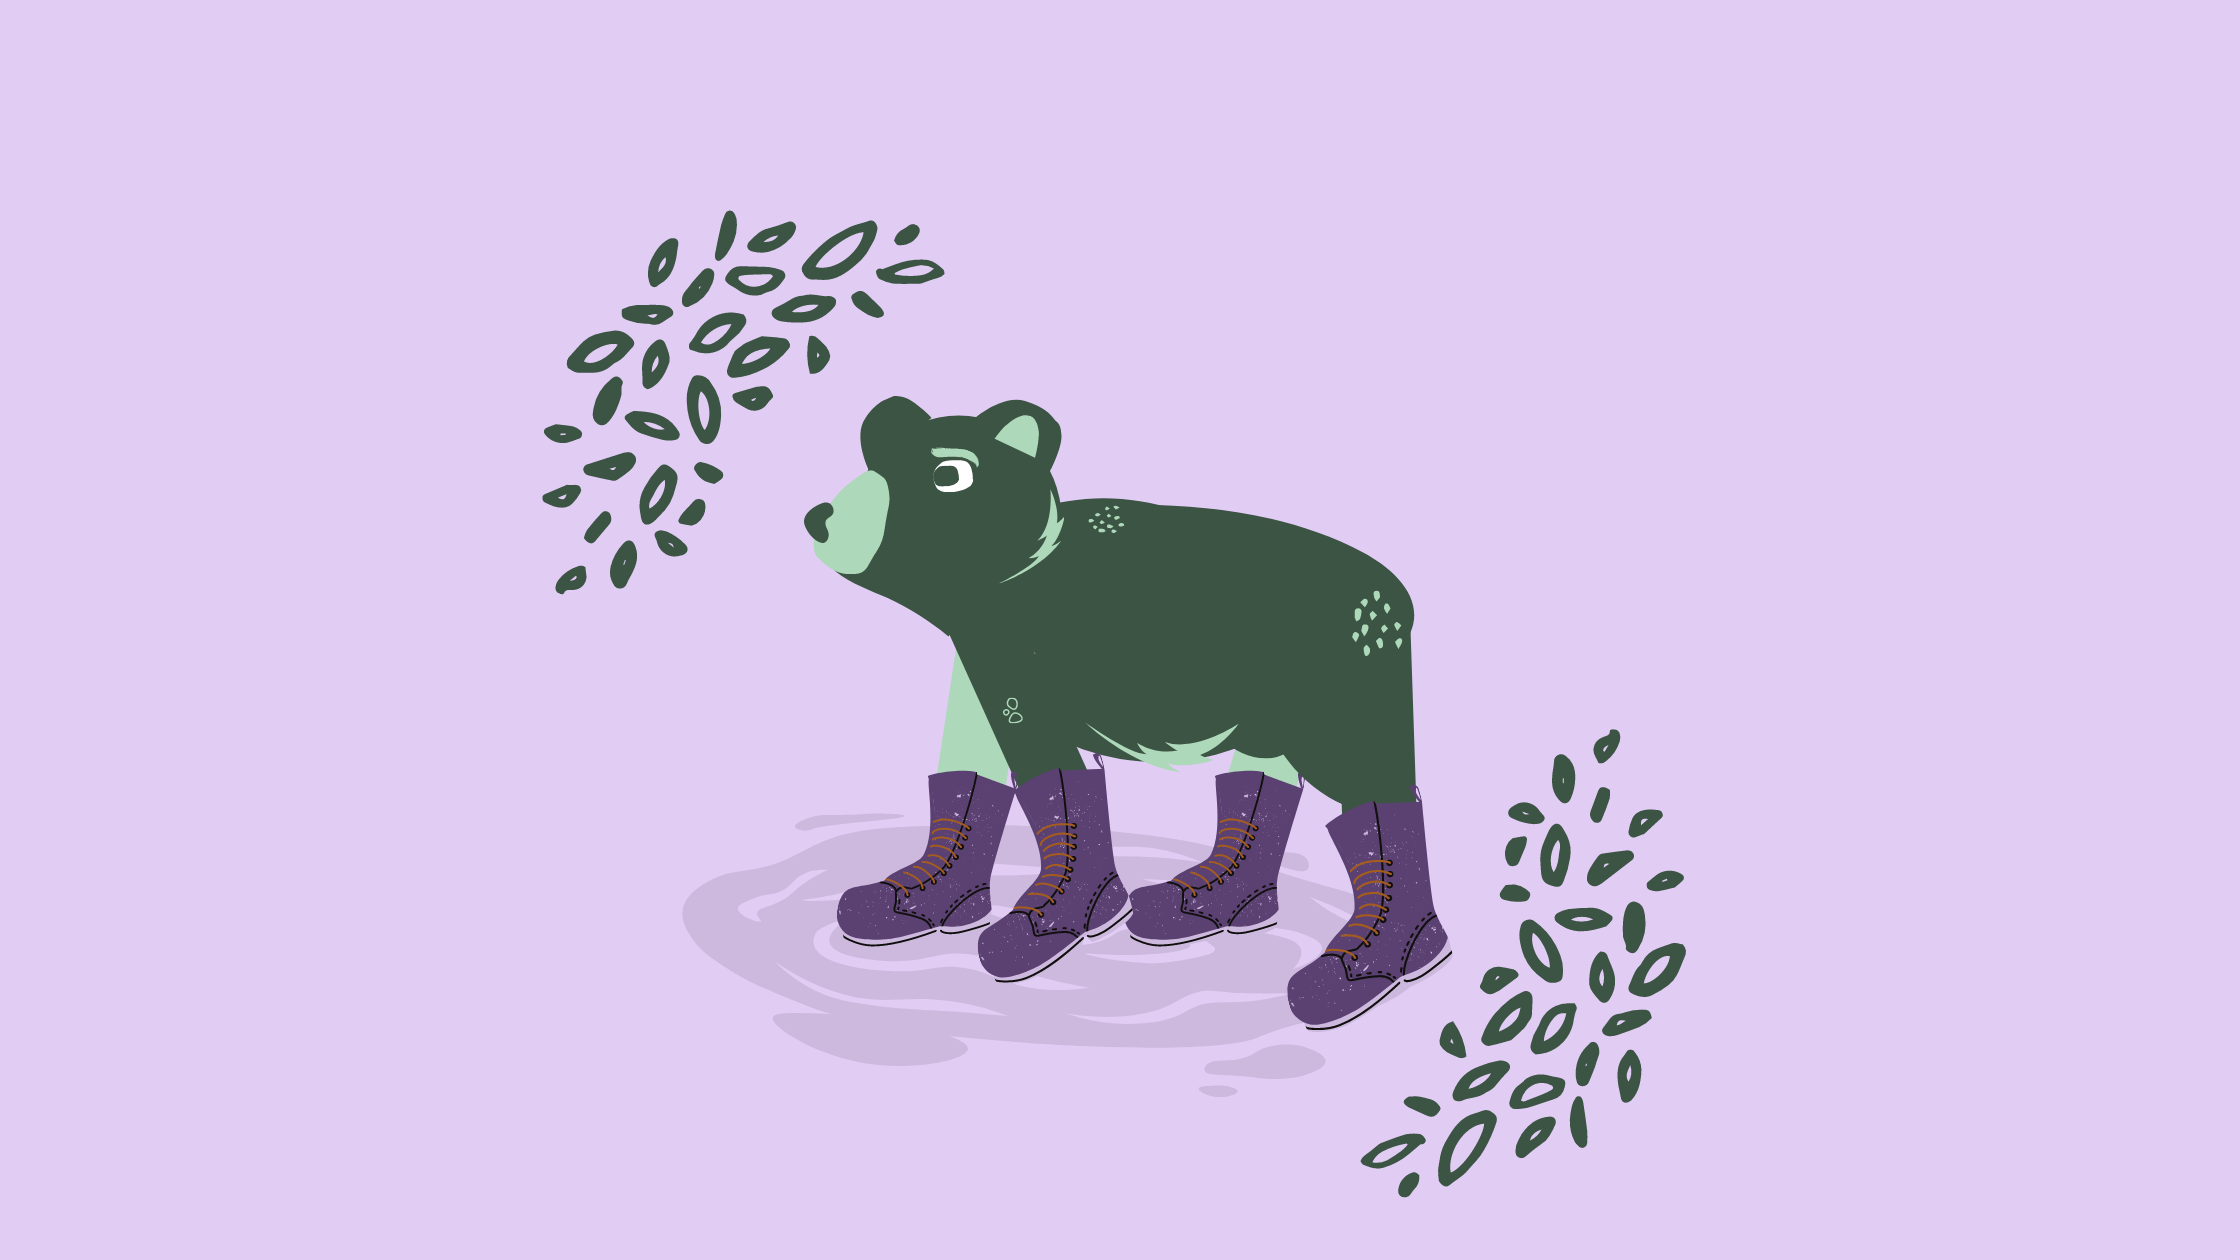 A bear, wearing hiking boots and looking worried, pauses in a puddle.